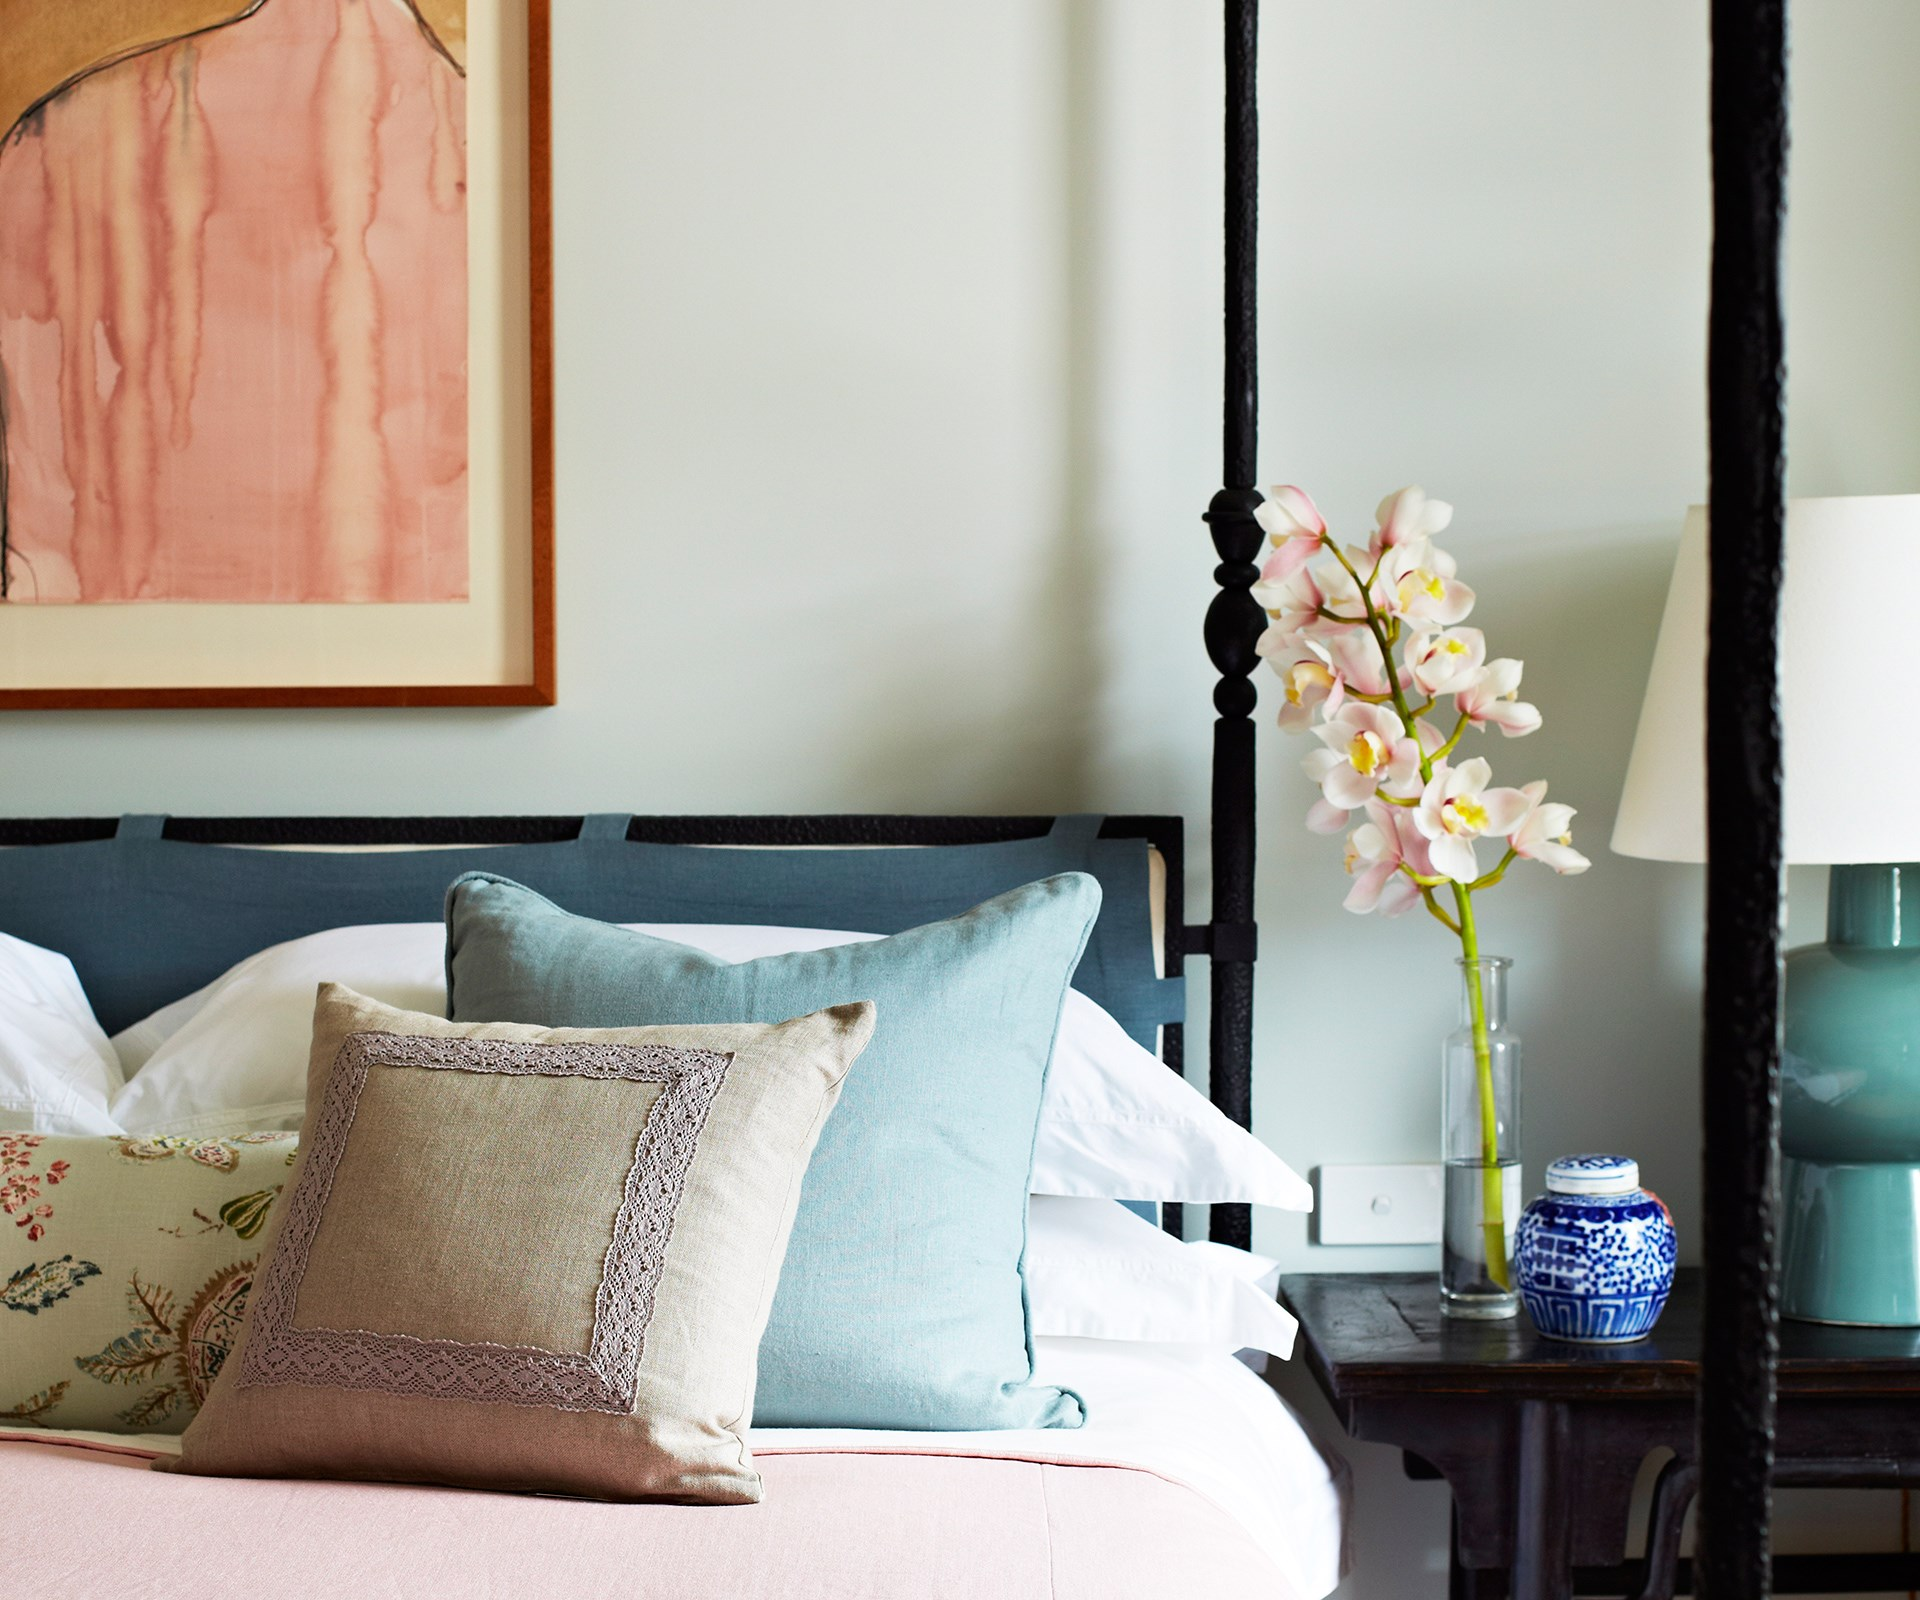 "Turn your spare room into the [perfect guest bedroom](http://www.homestolove.com.au/7-shortcuts-to-create-the-perfect-guest-bedroom-1729/?utm_campaign=supplier/|target=""_blank"") that will wow guests. Photo: John Paul Urizar / *real living*"